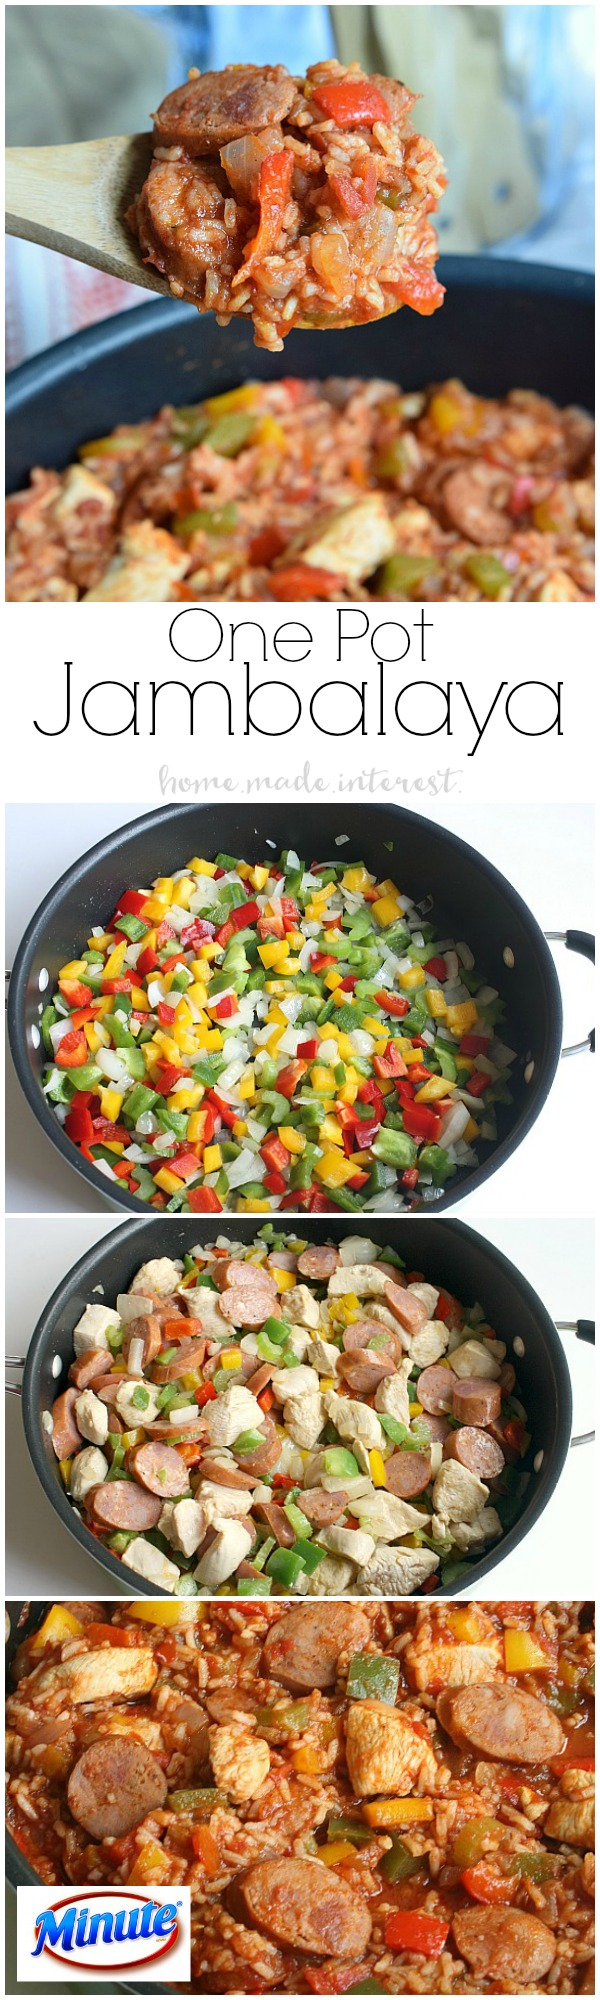 This Jambalaya recipe only takes one pot and 20 minutes! It is an easy weeknight recipe that the family will love.